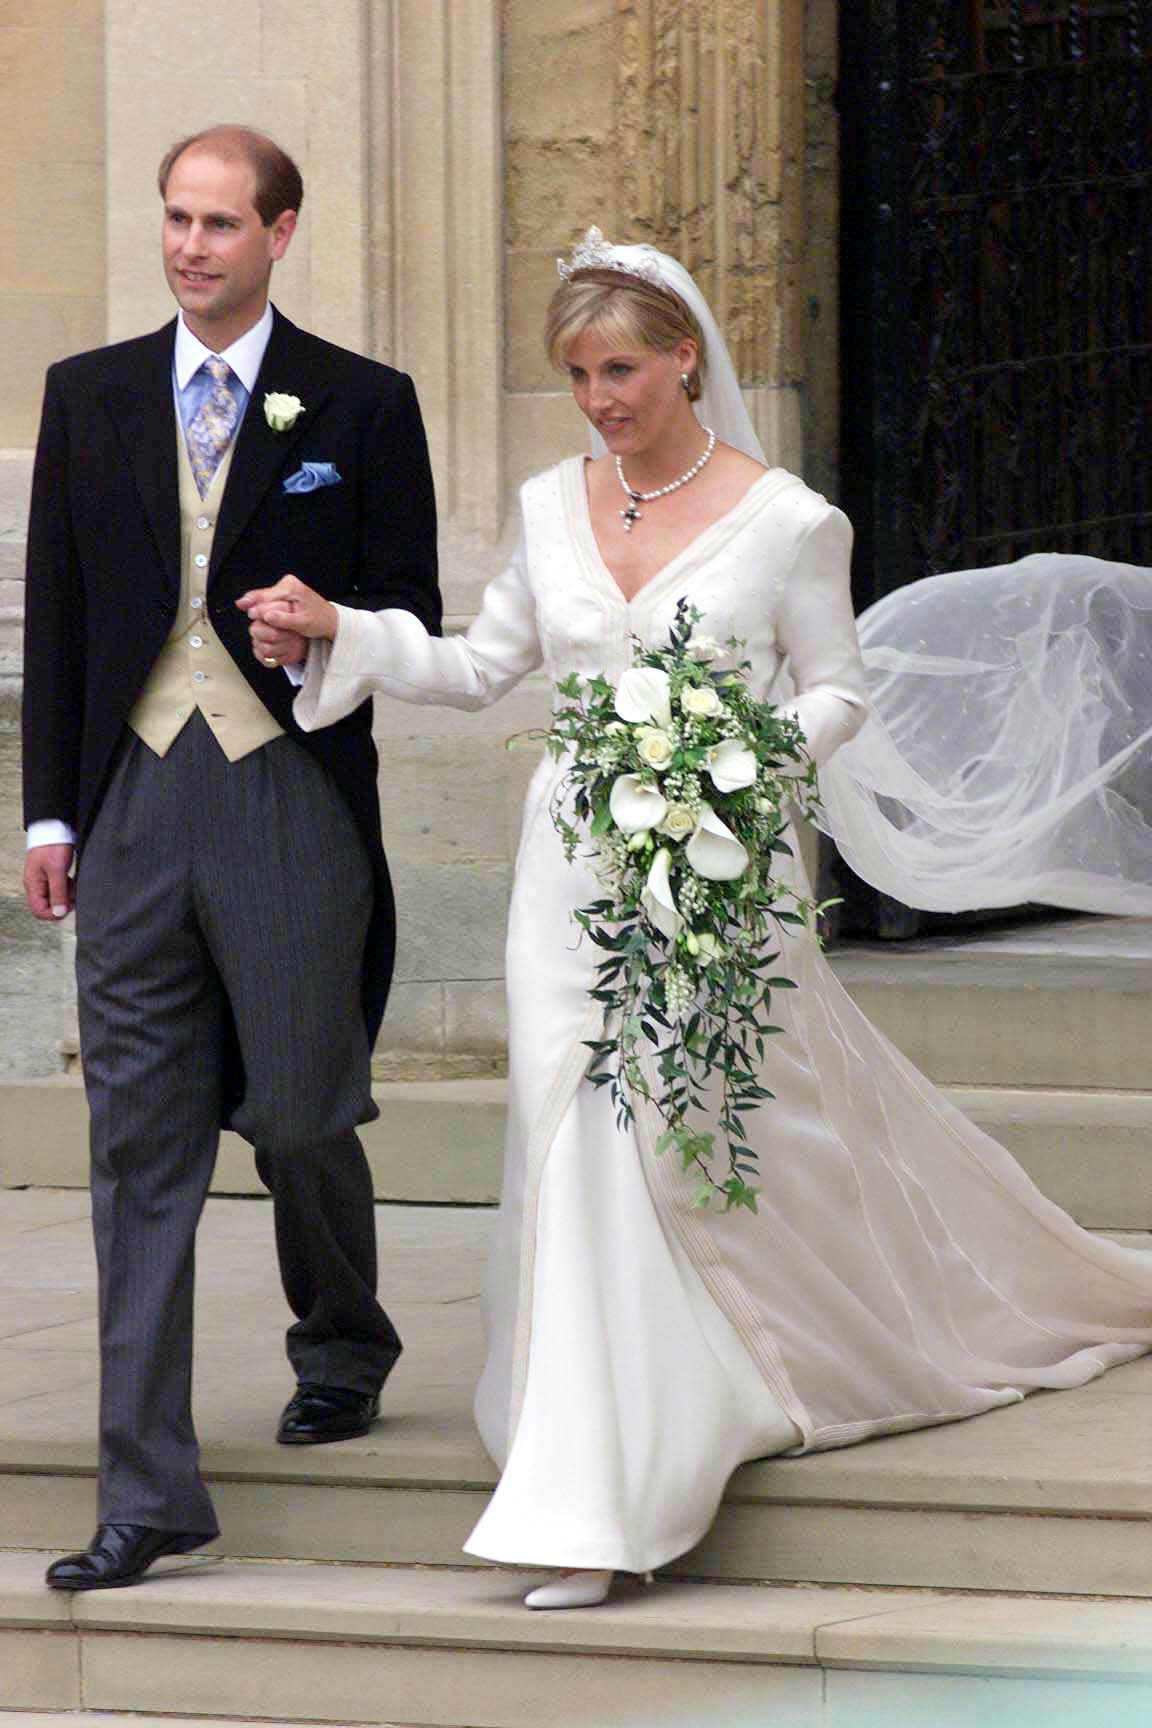 The Earl and Countess of Wessex on their wedding day on June 19, 1999.